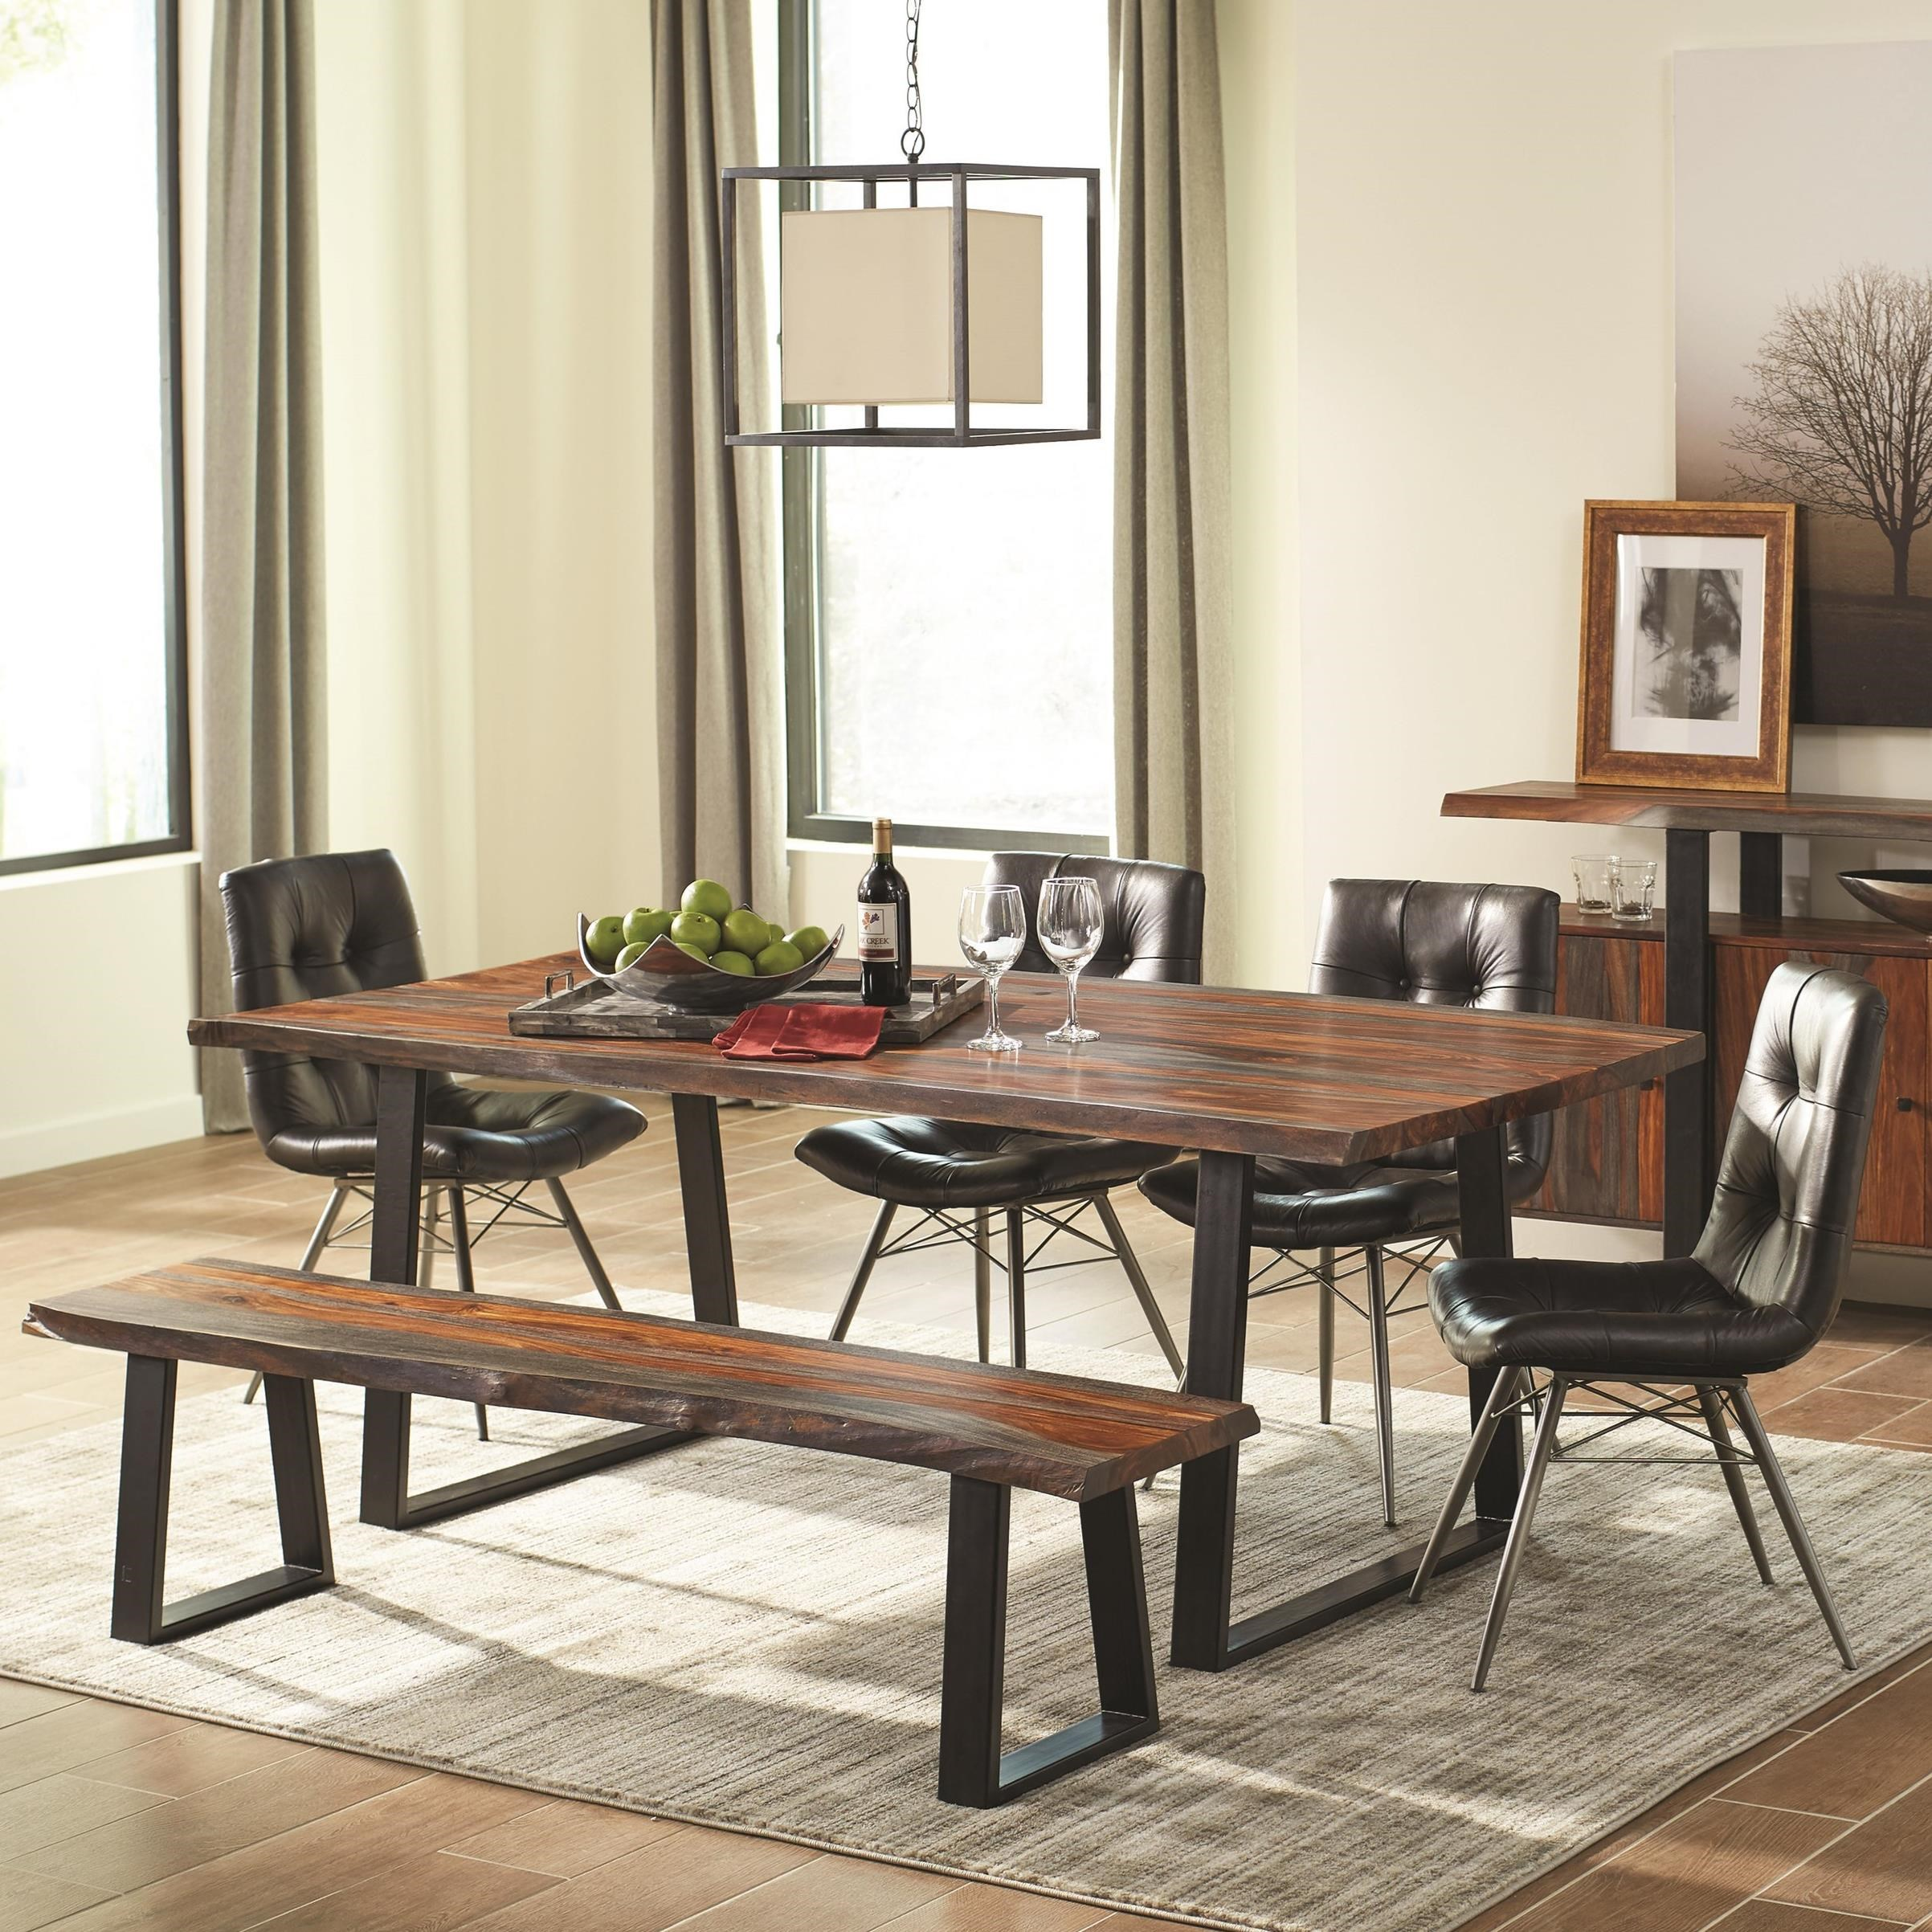 City Furniture Dining Room: Scott Living Jamestown Rustic Dining Room Set With Bench